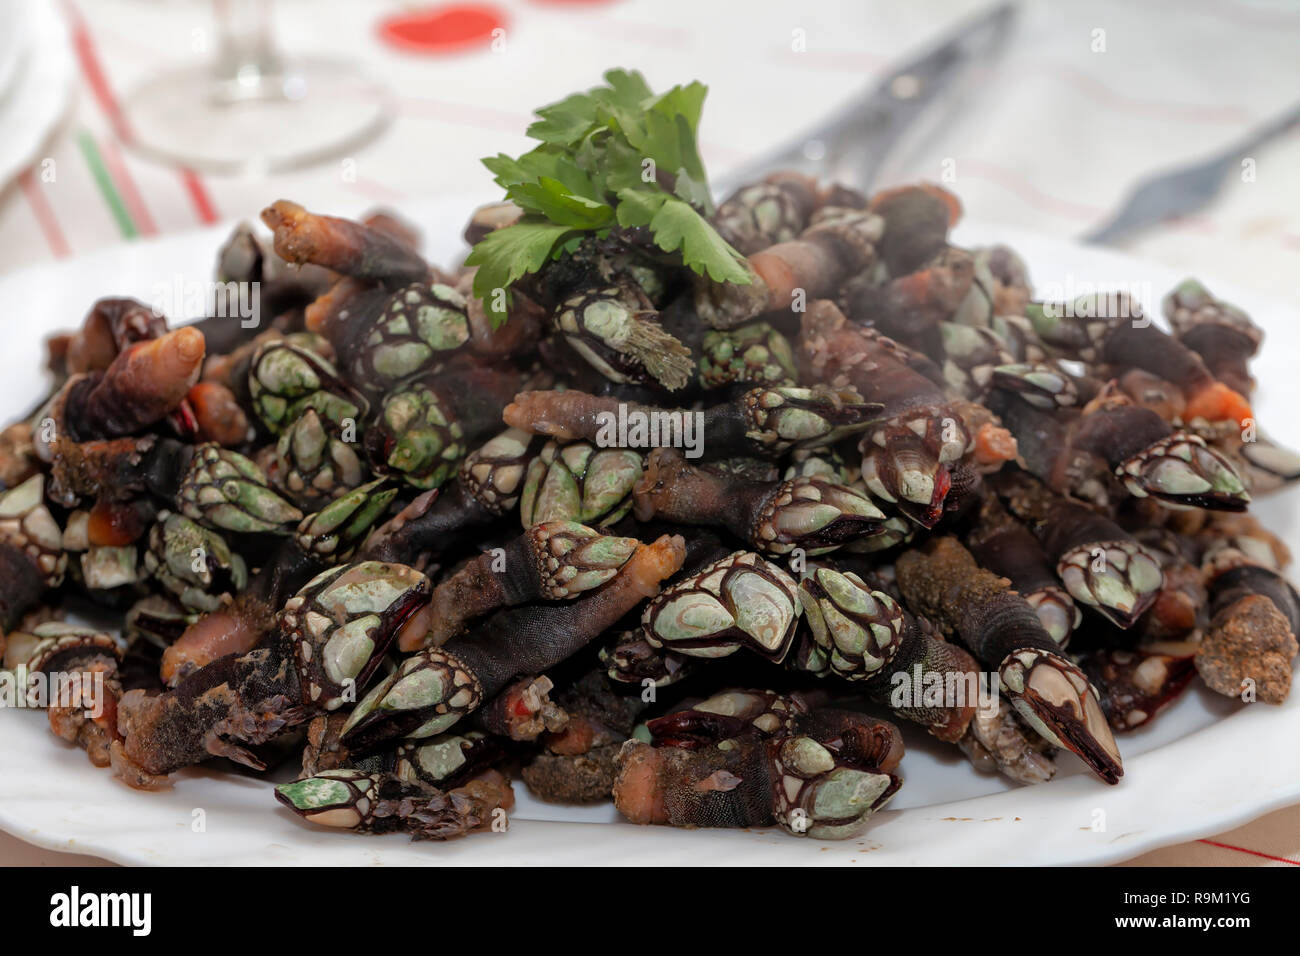 A dish with lots of freshly cooked barnacles at home. Stock Photo